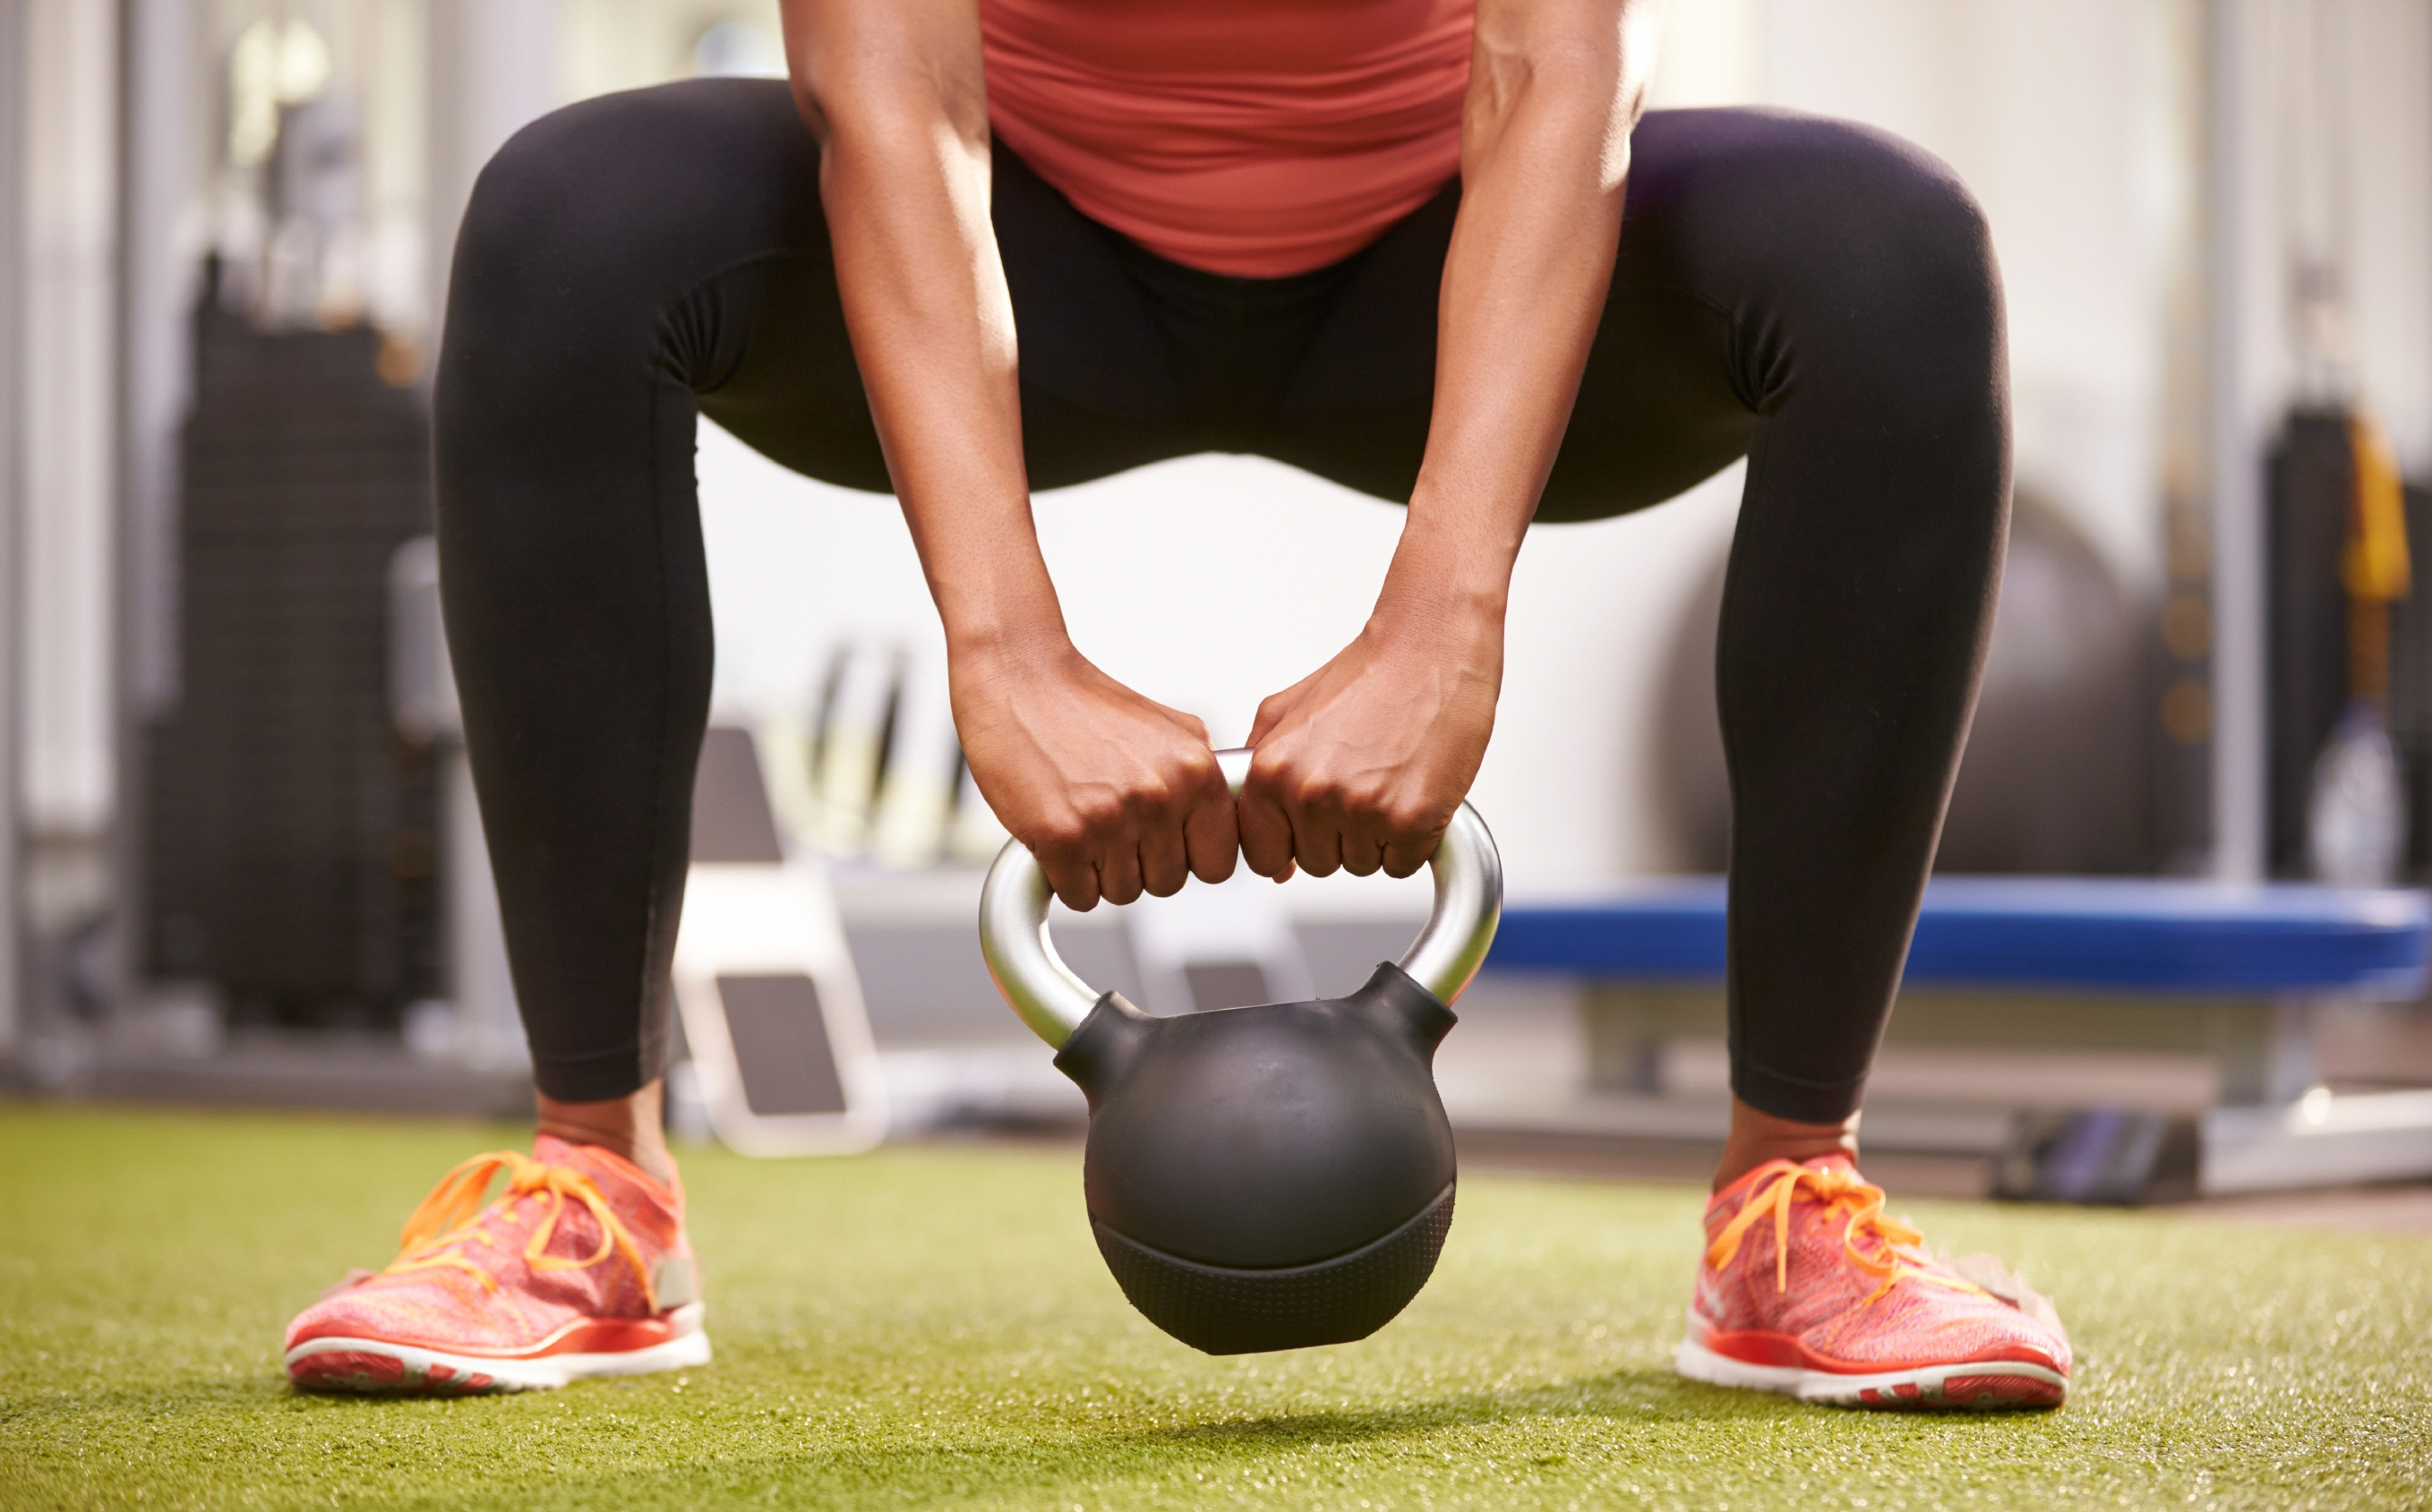 Anti Aging And Weight Training What New Research Is Promising